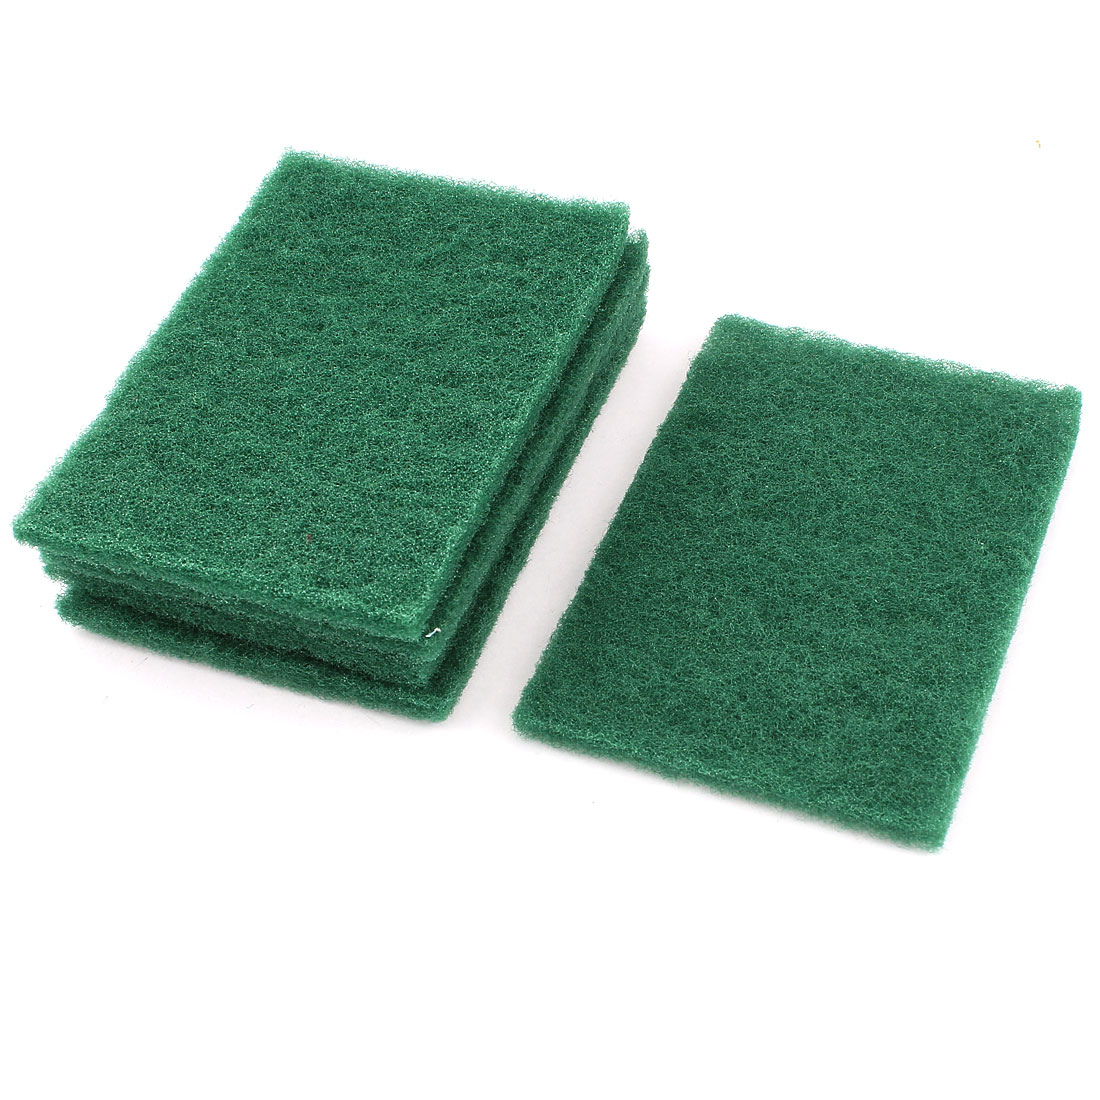 Home Kitchen Bowl Dish Wash Clean Scrub Sponge Cleaning Pads Green 5pcs